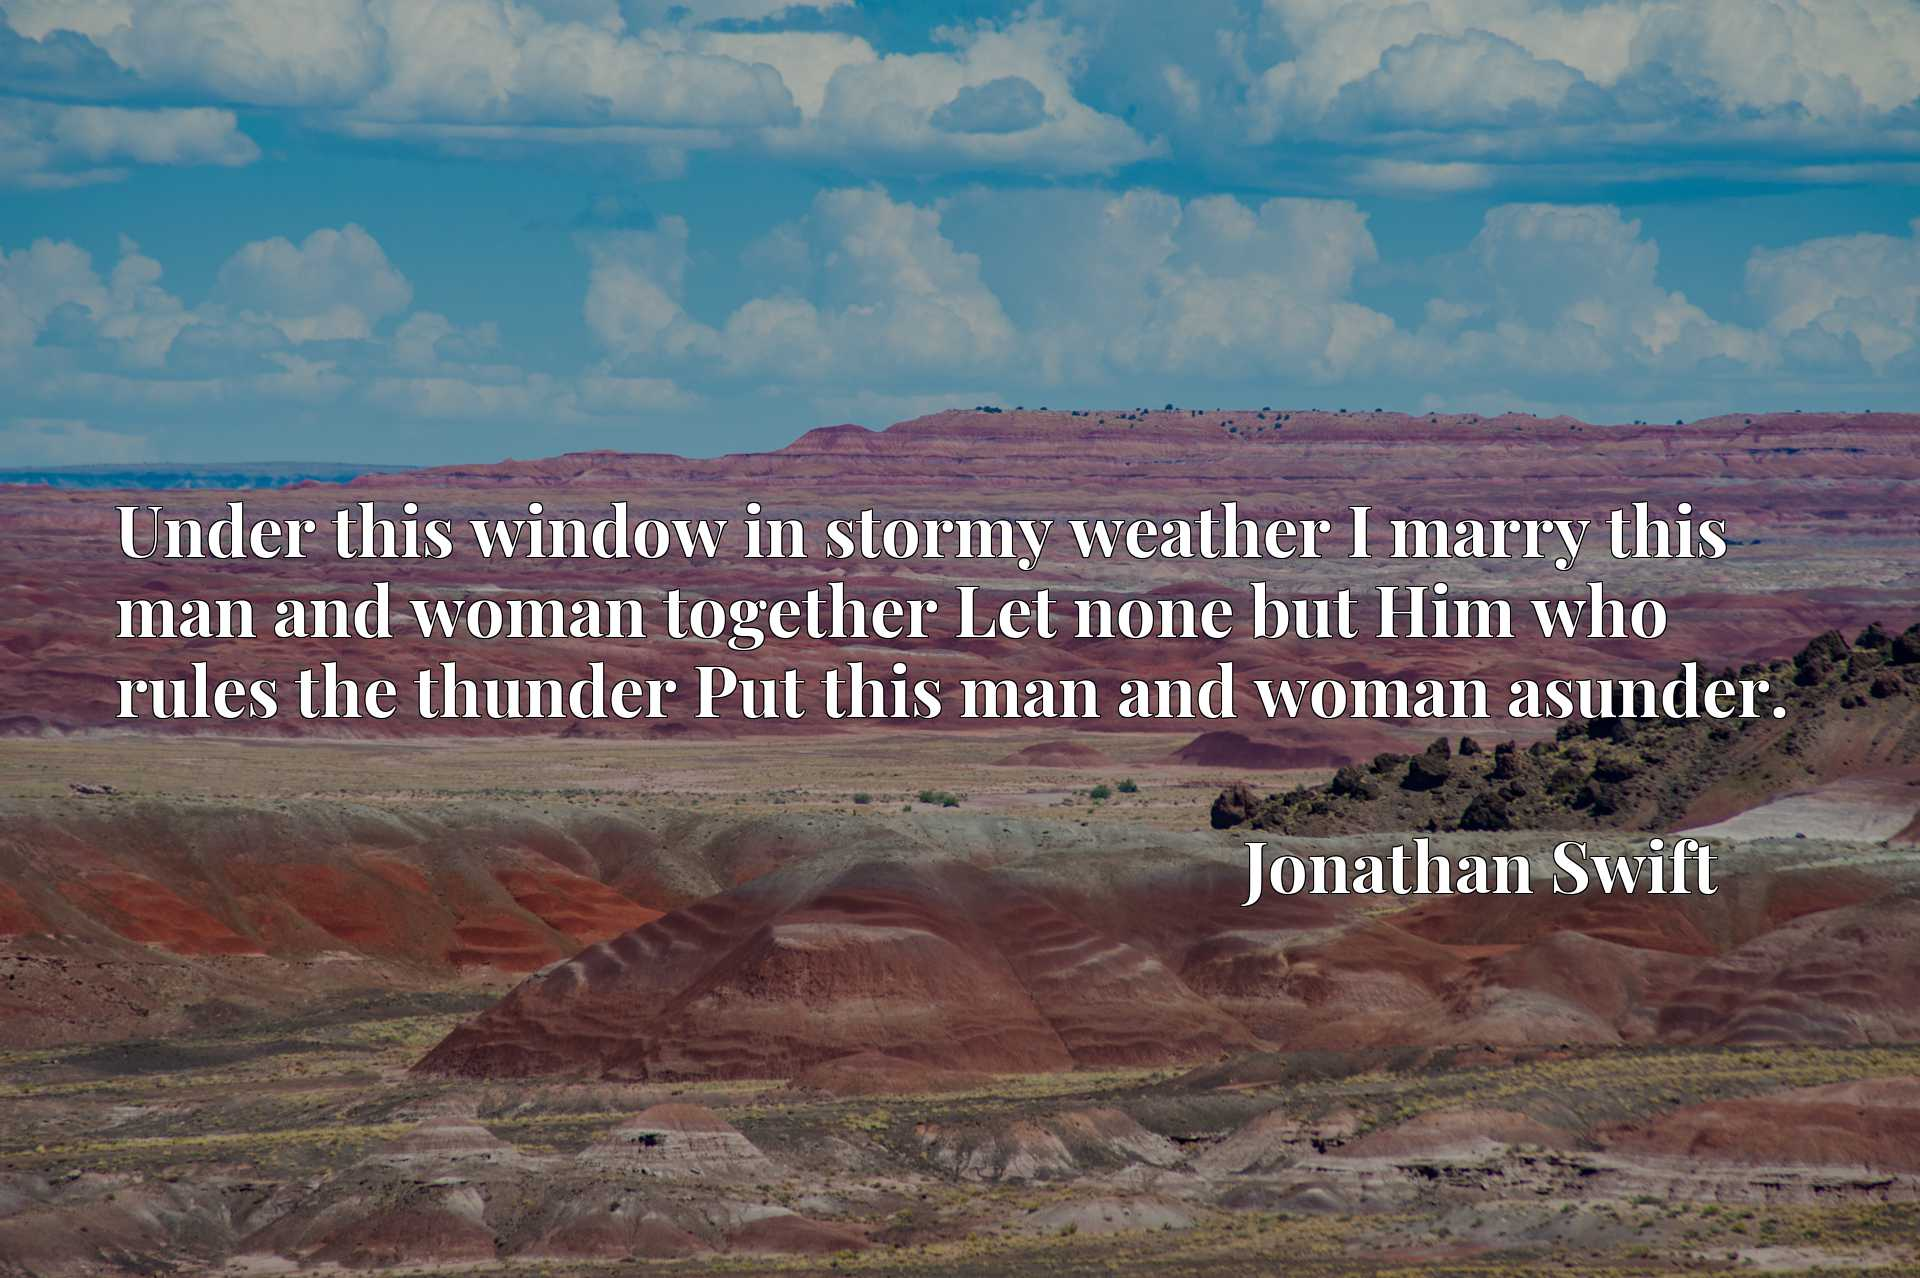 Under this window in stormy weather I marry this man and woman together Let none but Him who rules the thunder Put this man and woman asunder.